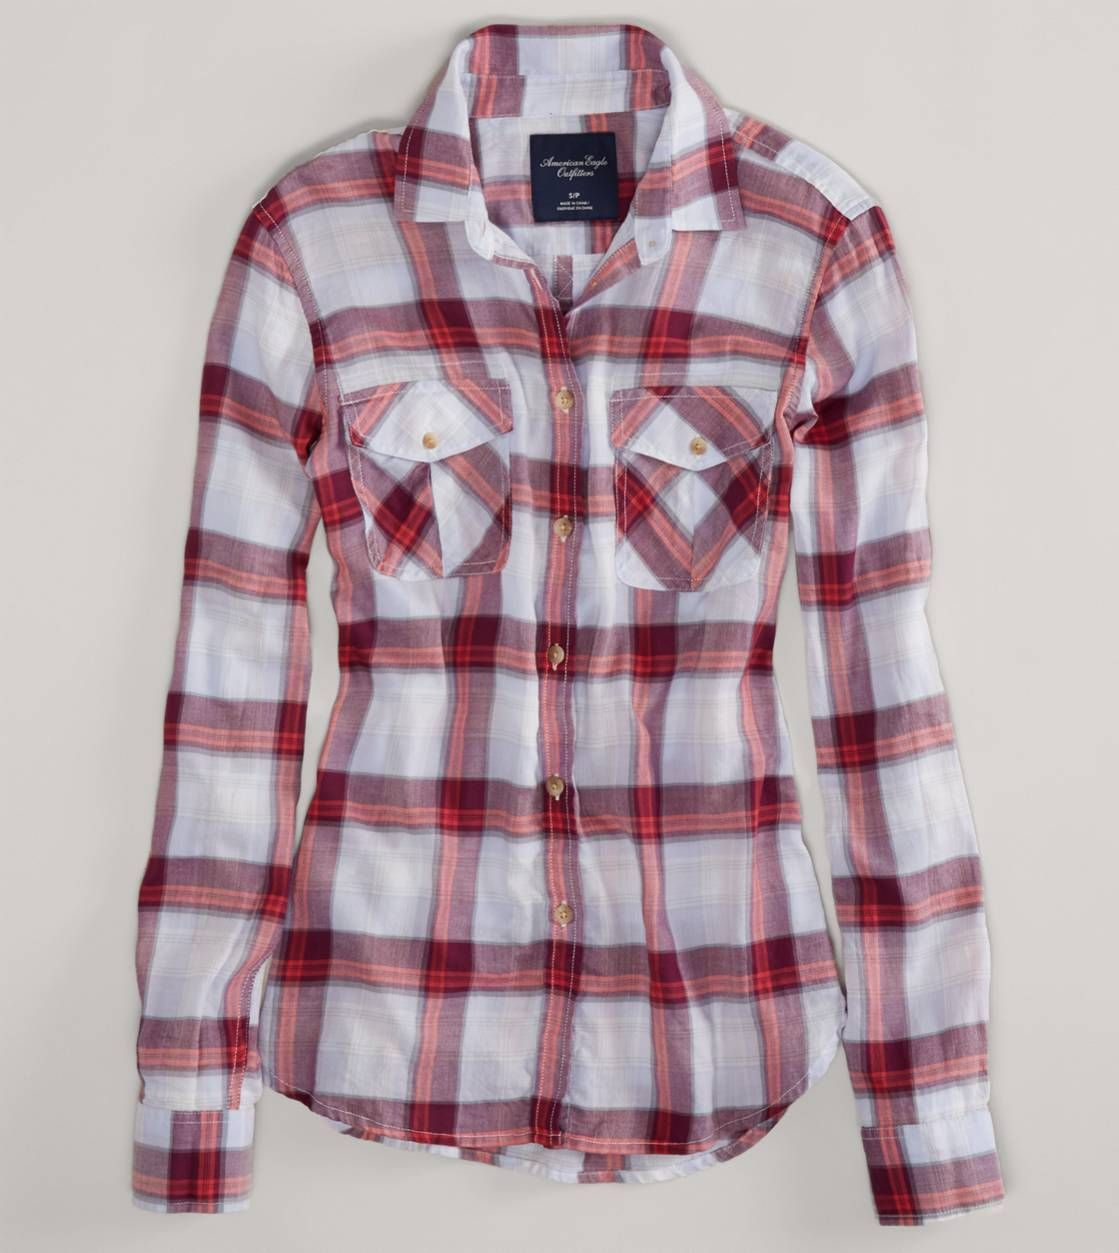 Flannel with jeans and boots  AE Plaid Shirt  My style  Pinterest  Plaid Clothes and Dream